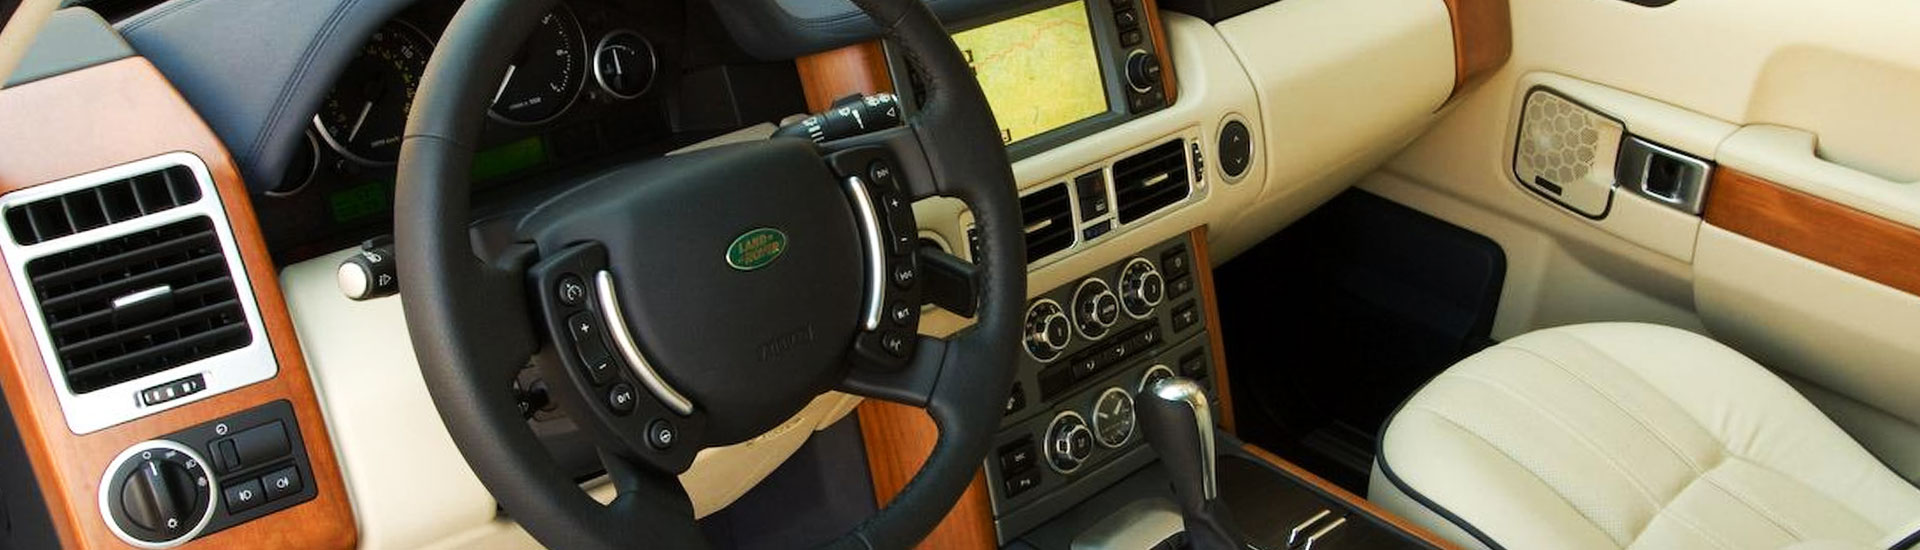 Land Rover Dash Kits | Custom Land Rover Dash Kit